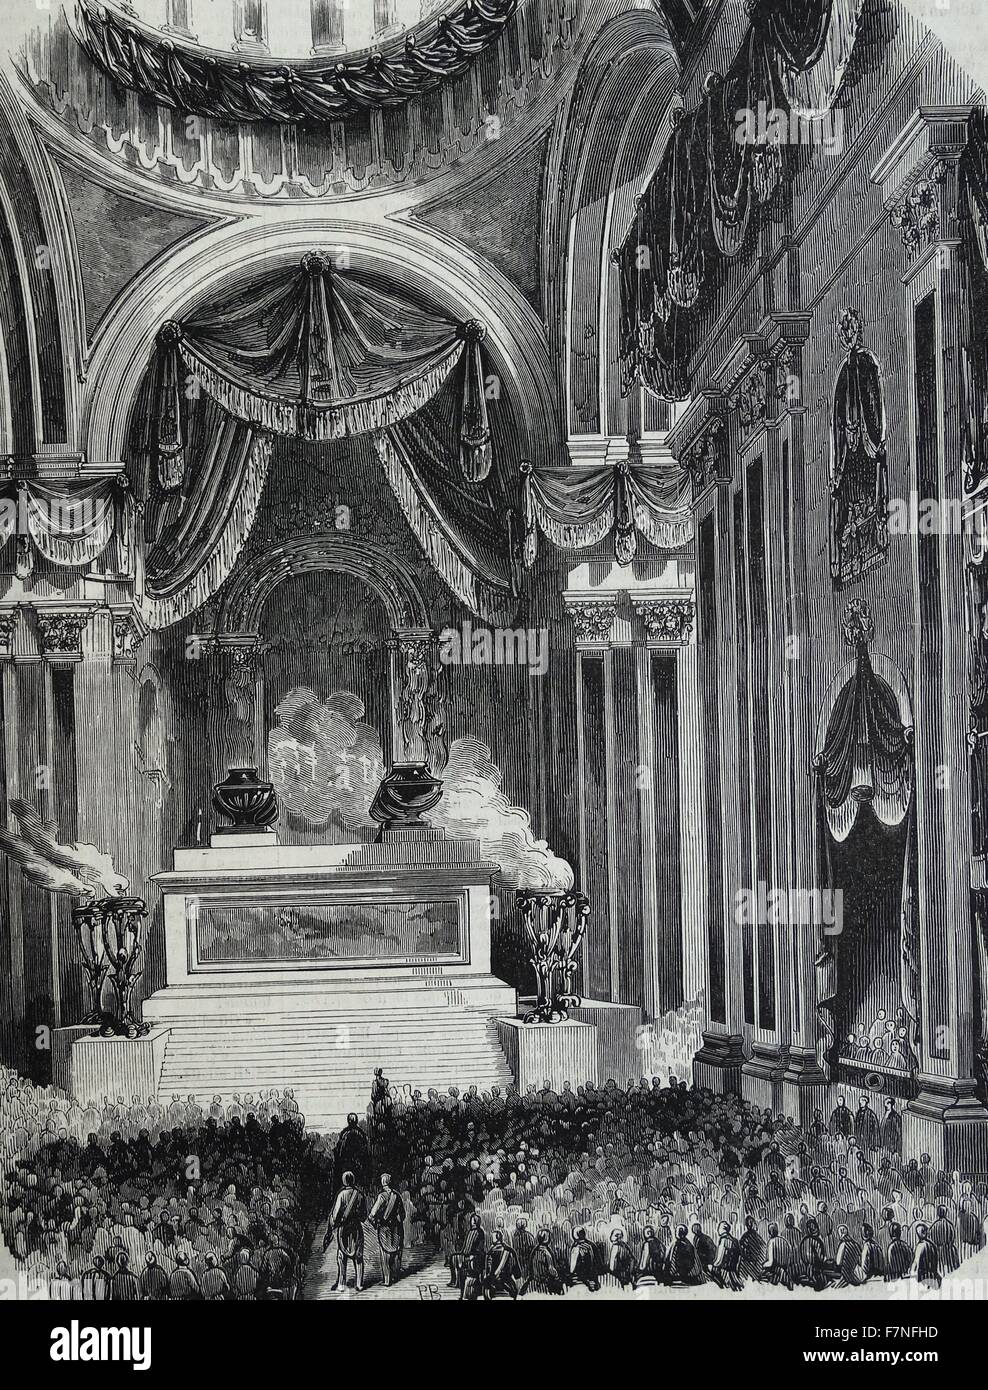 Funeral ceremony celebrated in Madrid in honor of Donoso Cortes (1809-1853) a Spanish author, conservative and catholic - Stock Image